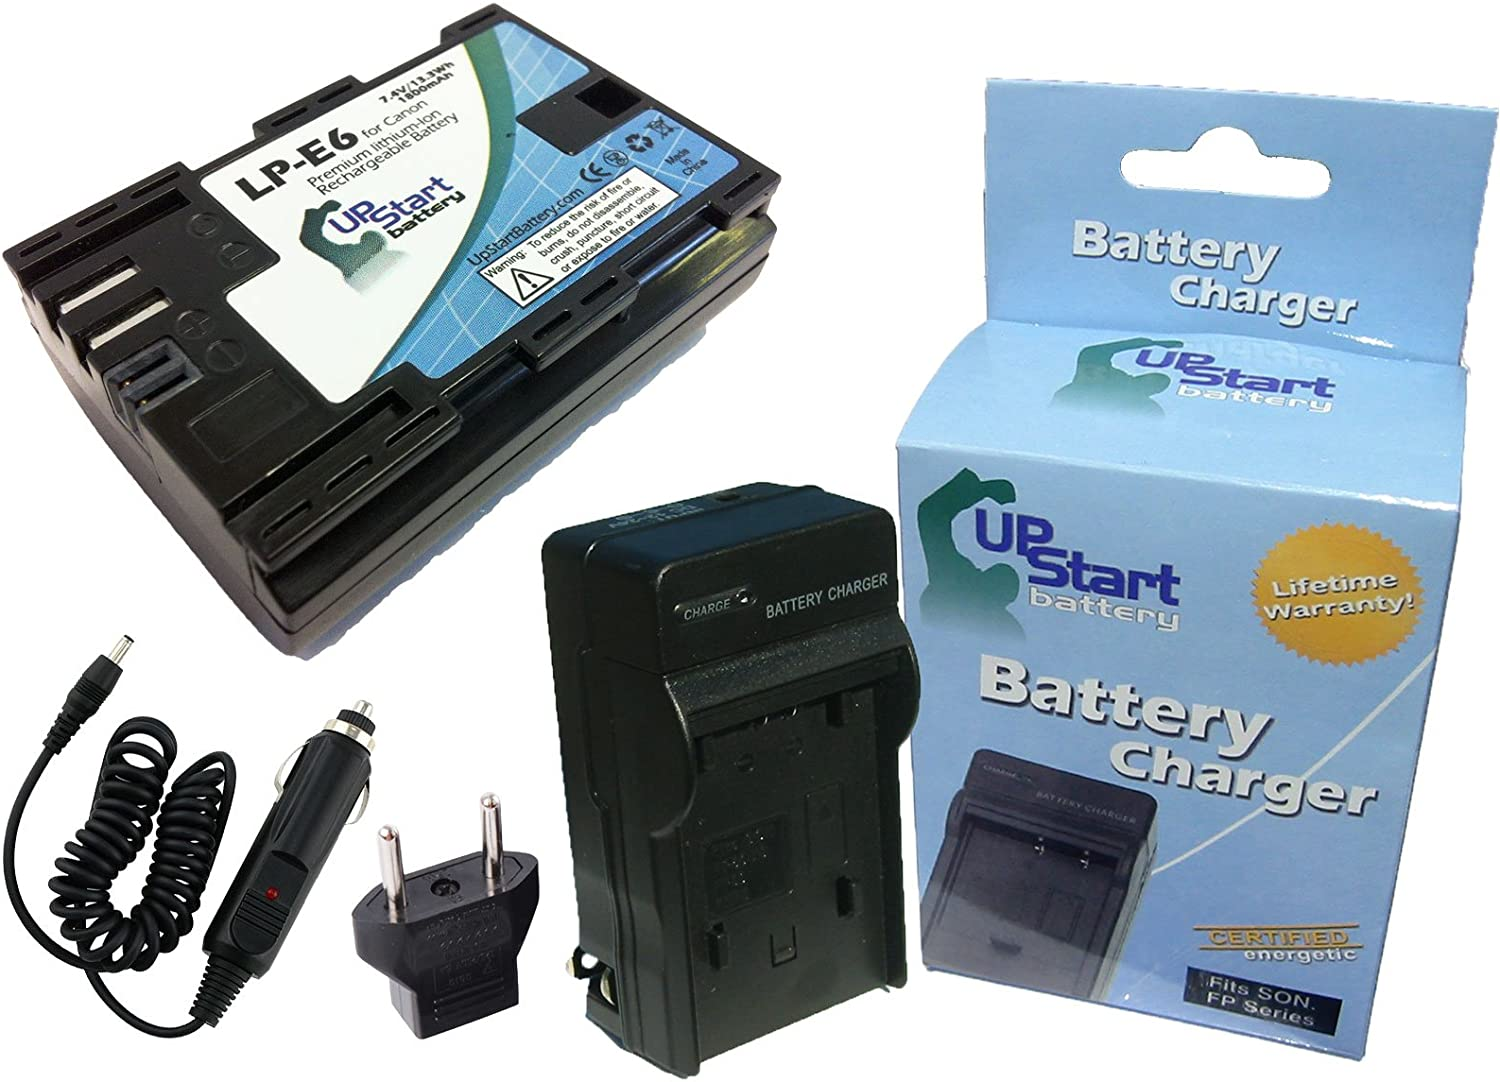 Compatible with Canon LP-E6 Digital Camera Batteries and Chargers 1800mAh 7.4V Lithium-Ion Replacement for Canon 60Da Battery and Charger with Car Plug and EU Adapter